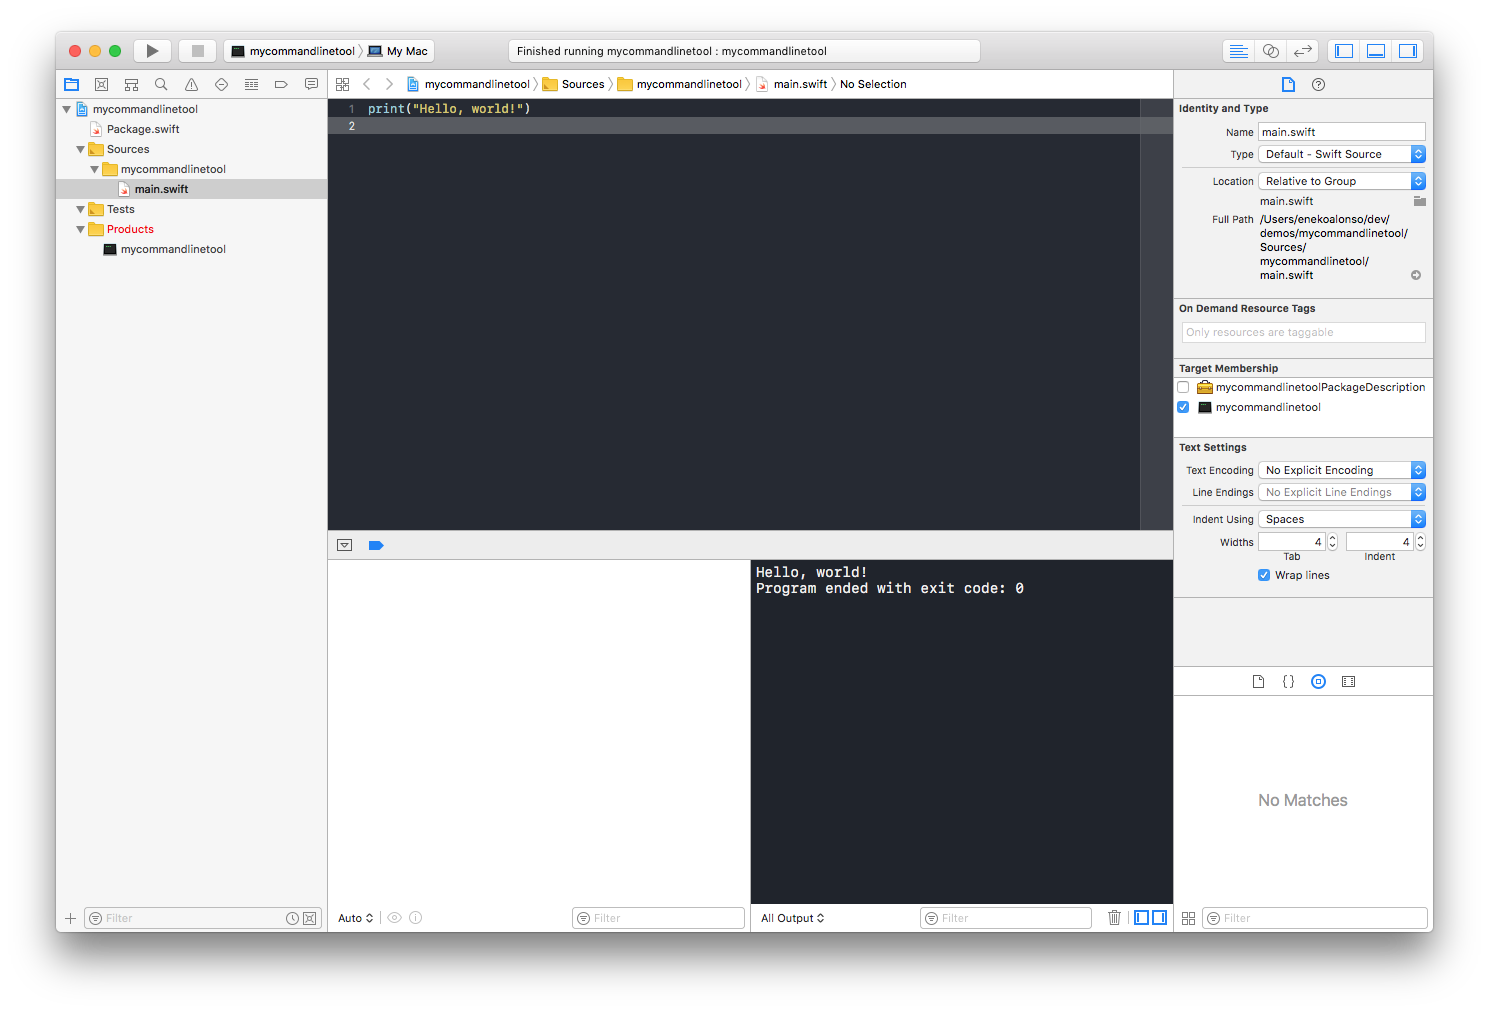 Running the project on Xcode